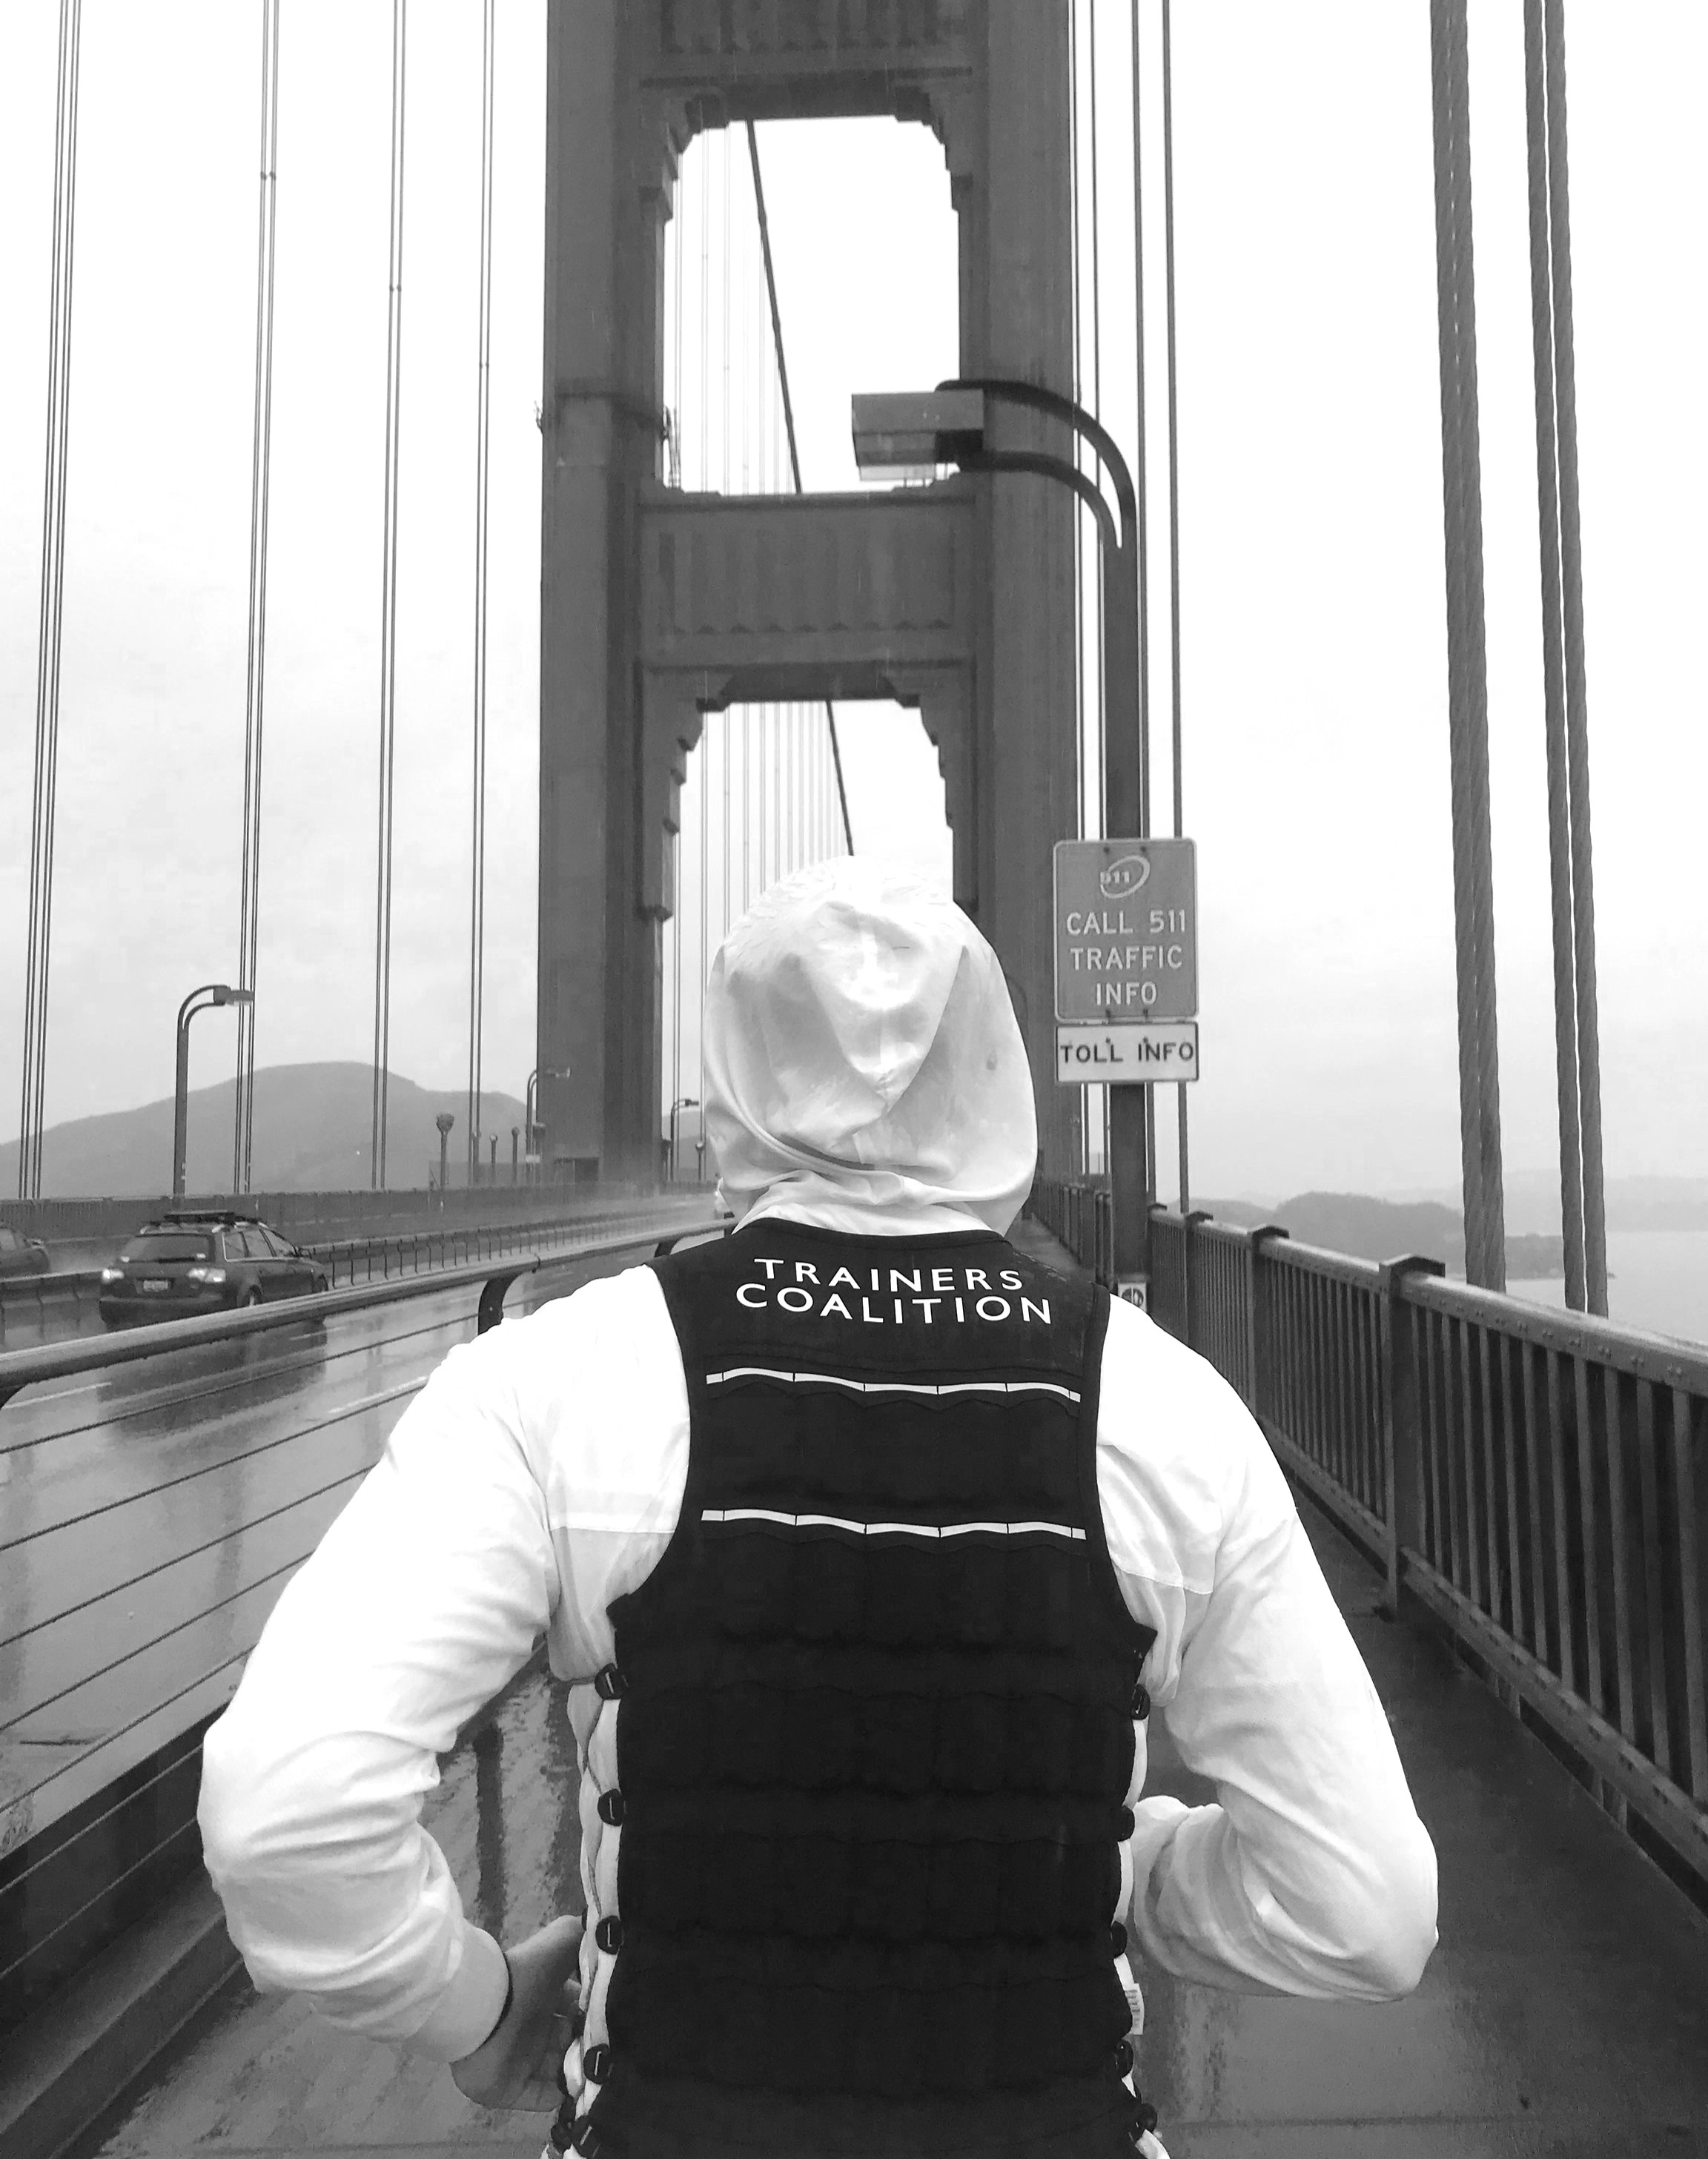 RUN 202020 - In April, Trainers Coalition founder Alan Li ran 20 marathons in 20 days in a 20-pound weighted vest from San Francisco to LA. Learn more about his journey to raise awareness for those without access to adequate fitness resources.